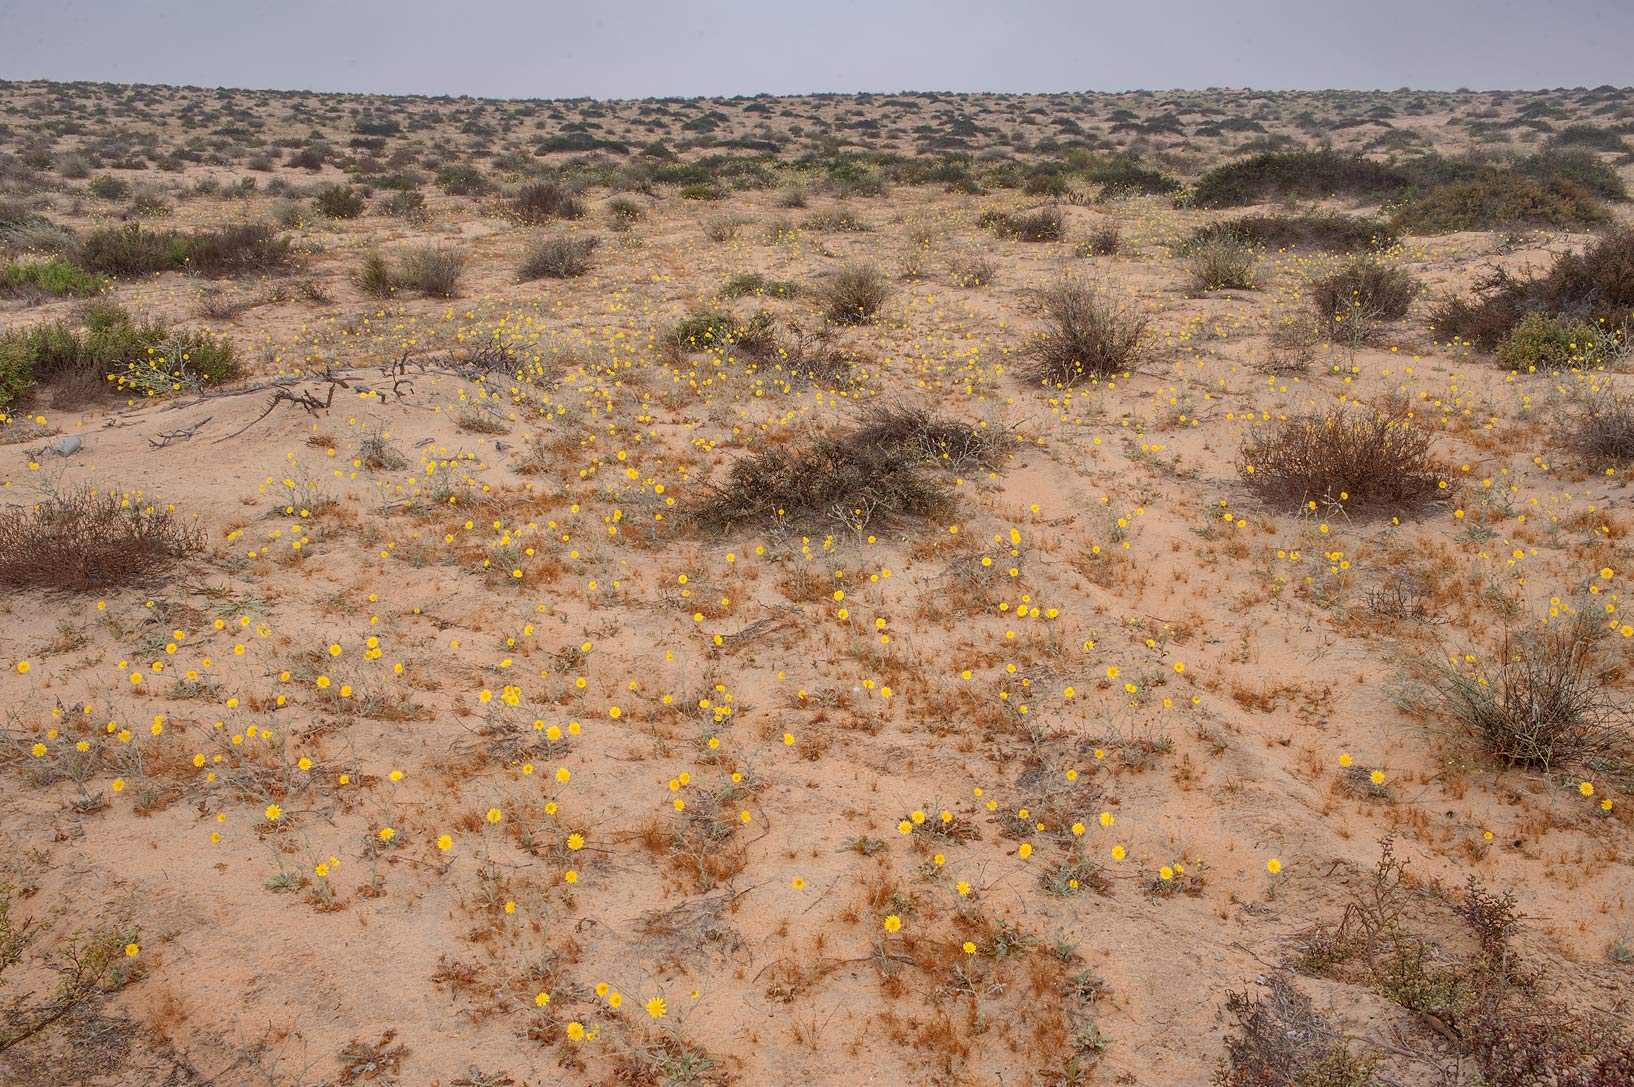 Sand dunes covered by flowers of Launaea...Reserve near Abu Samra. Southern Qatar